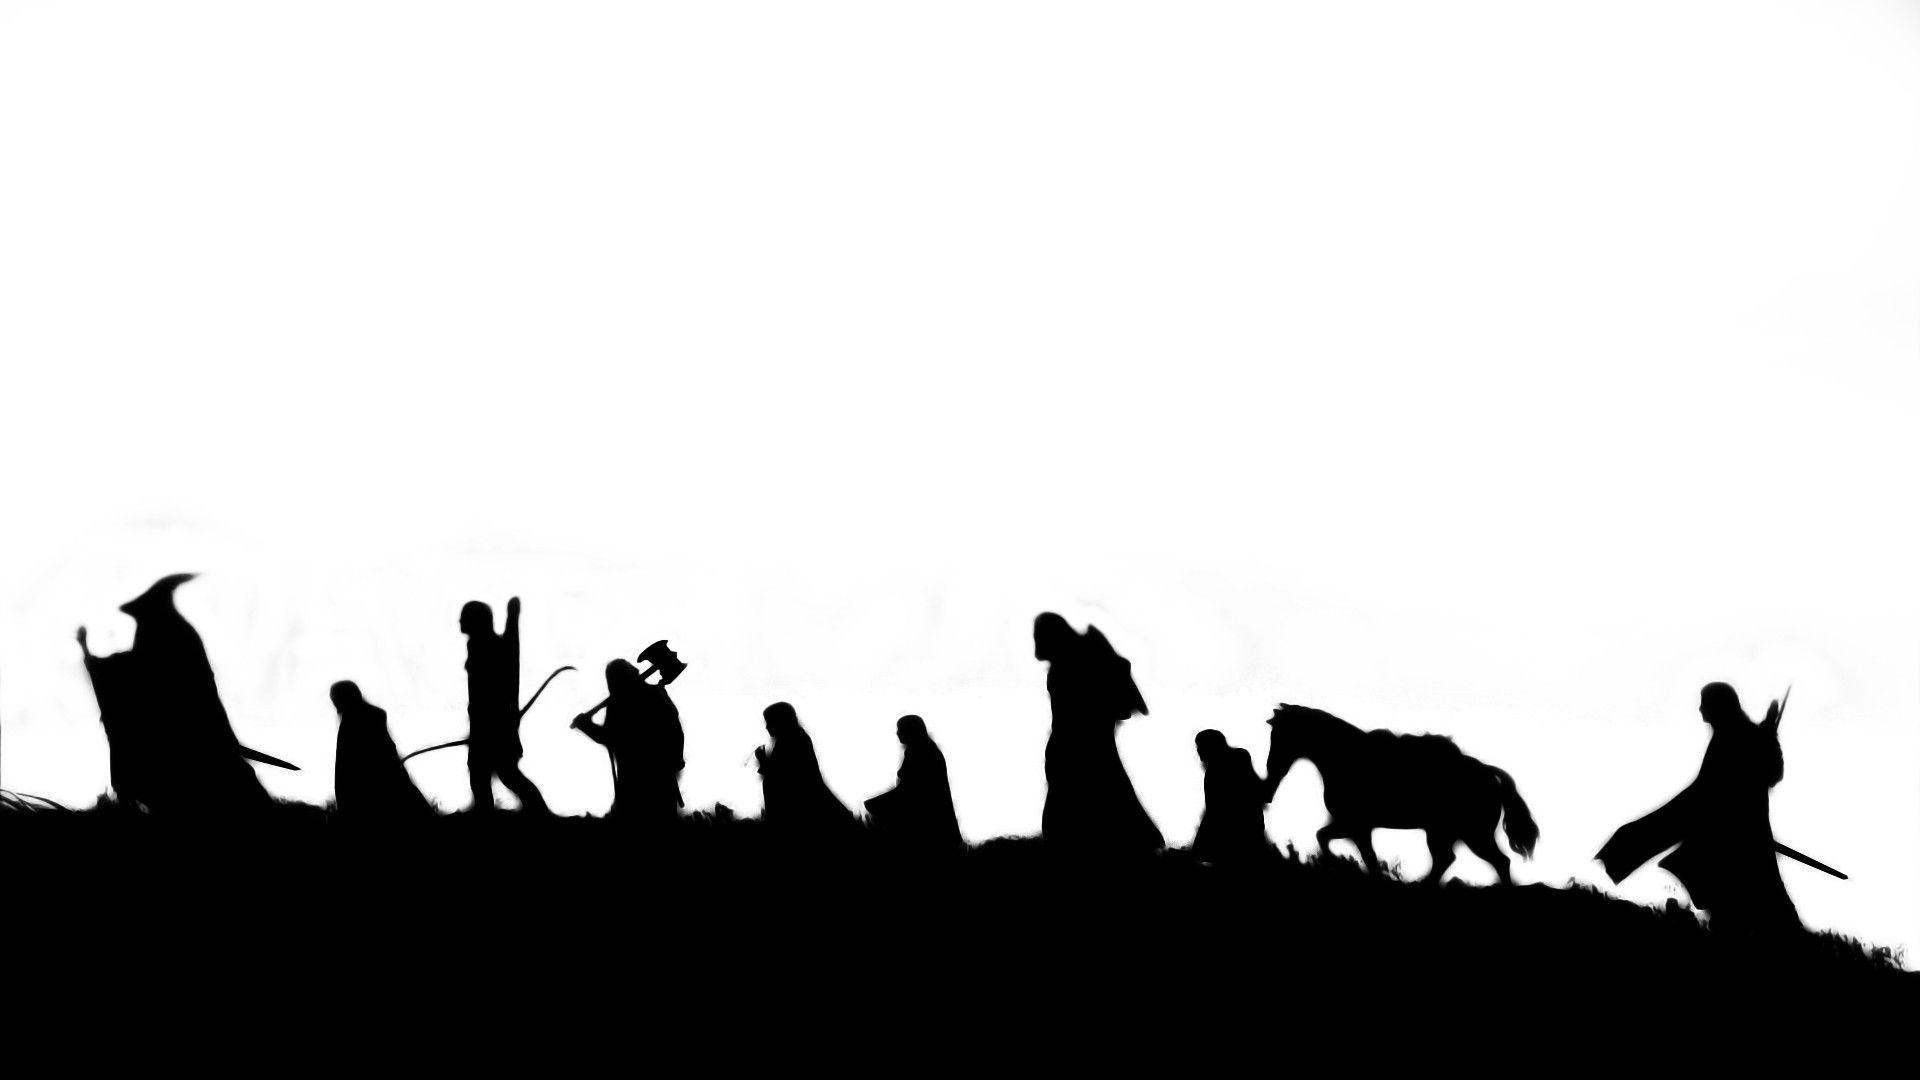 Simple black and white wallpapers [1080p] : lotr